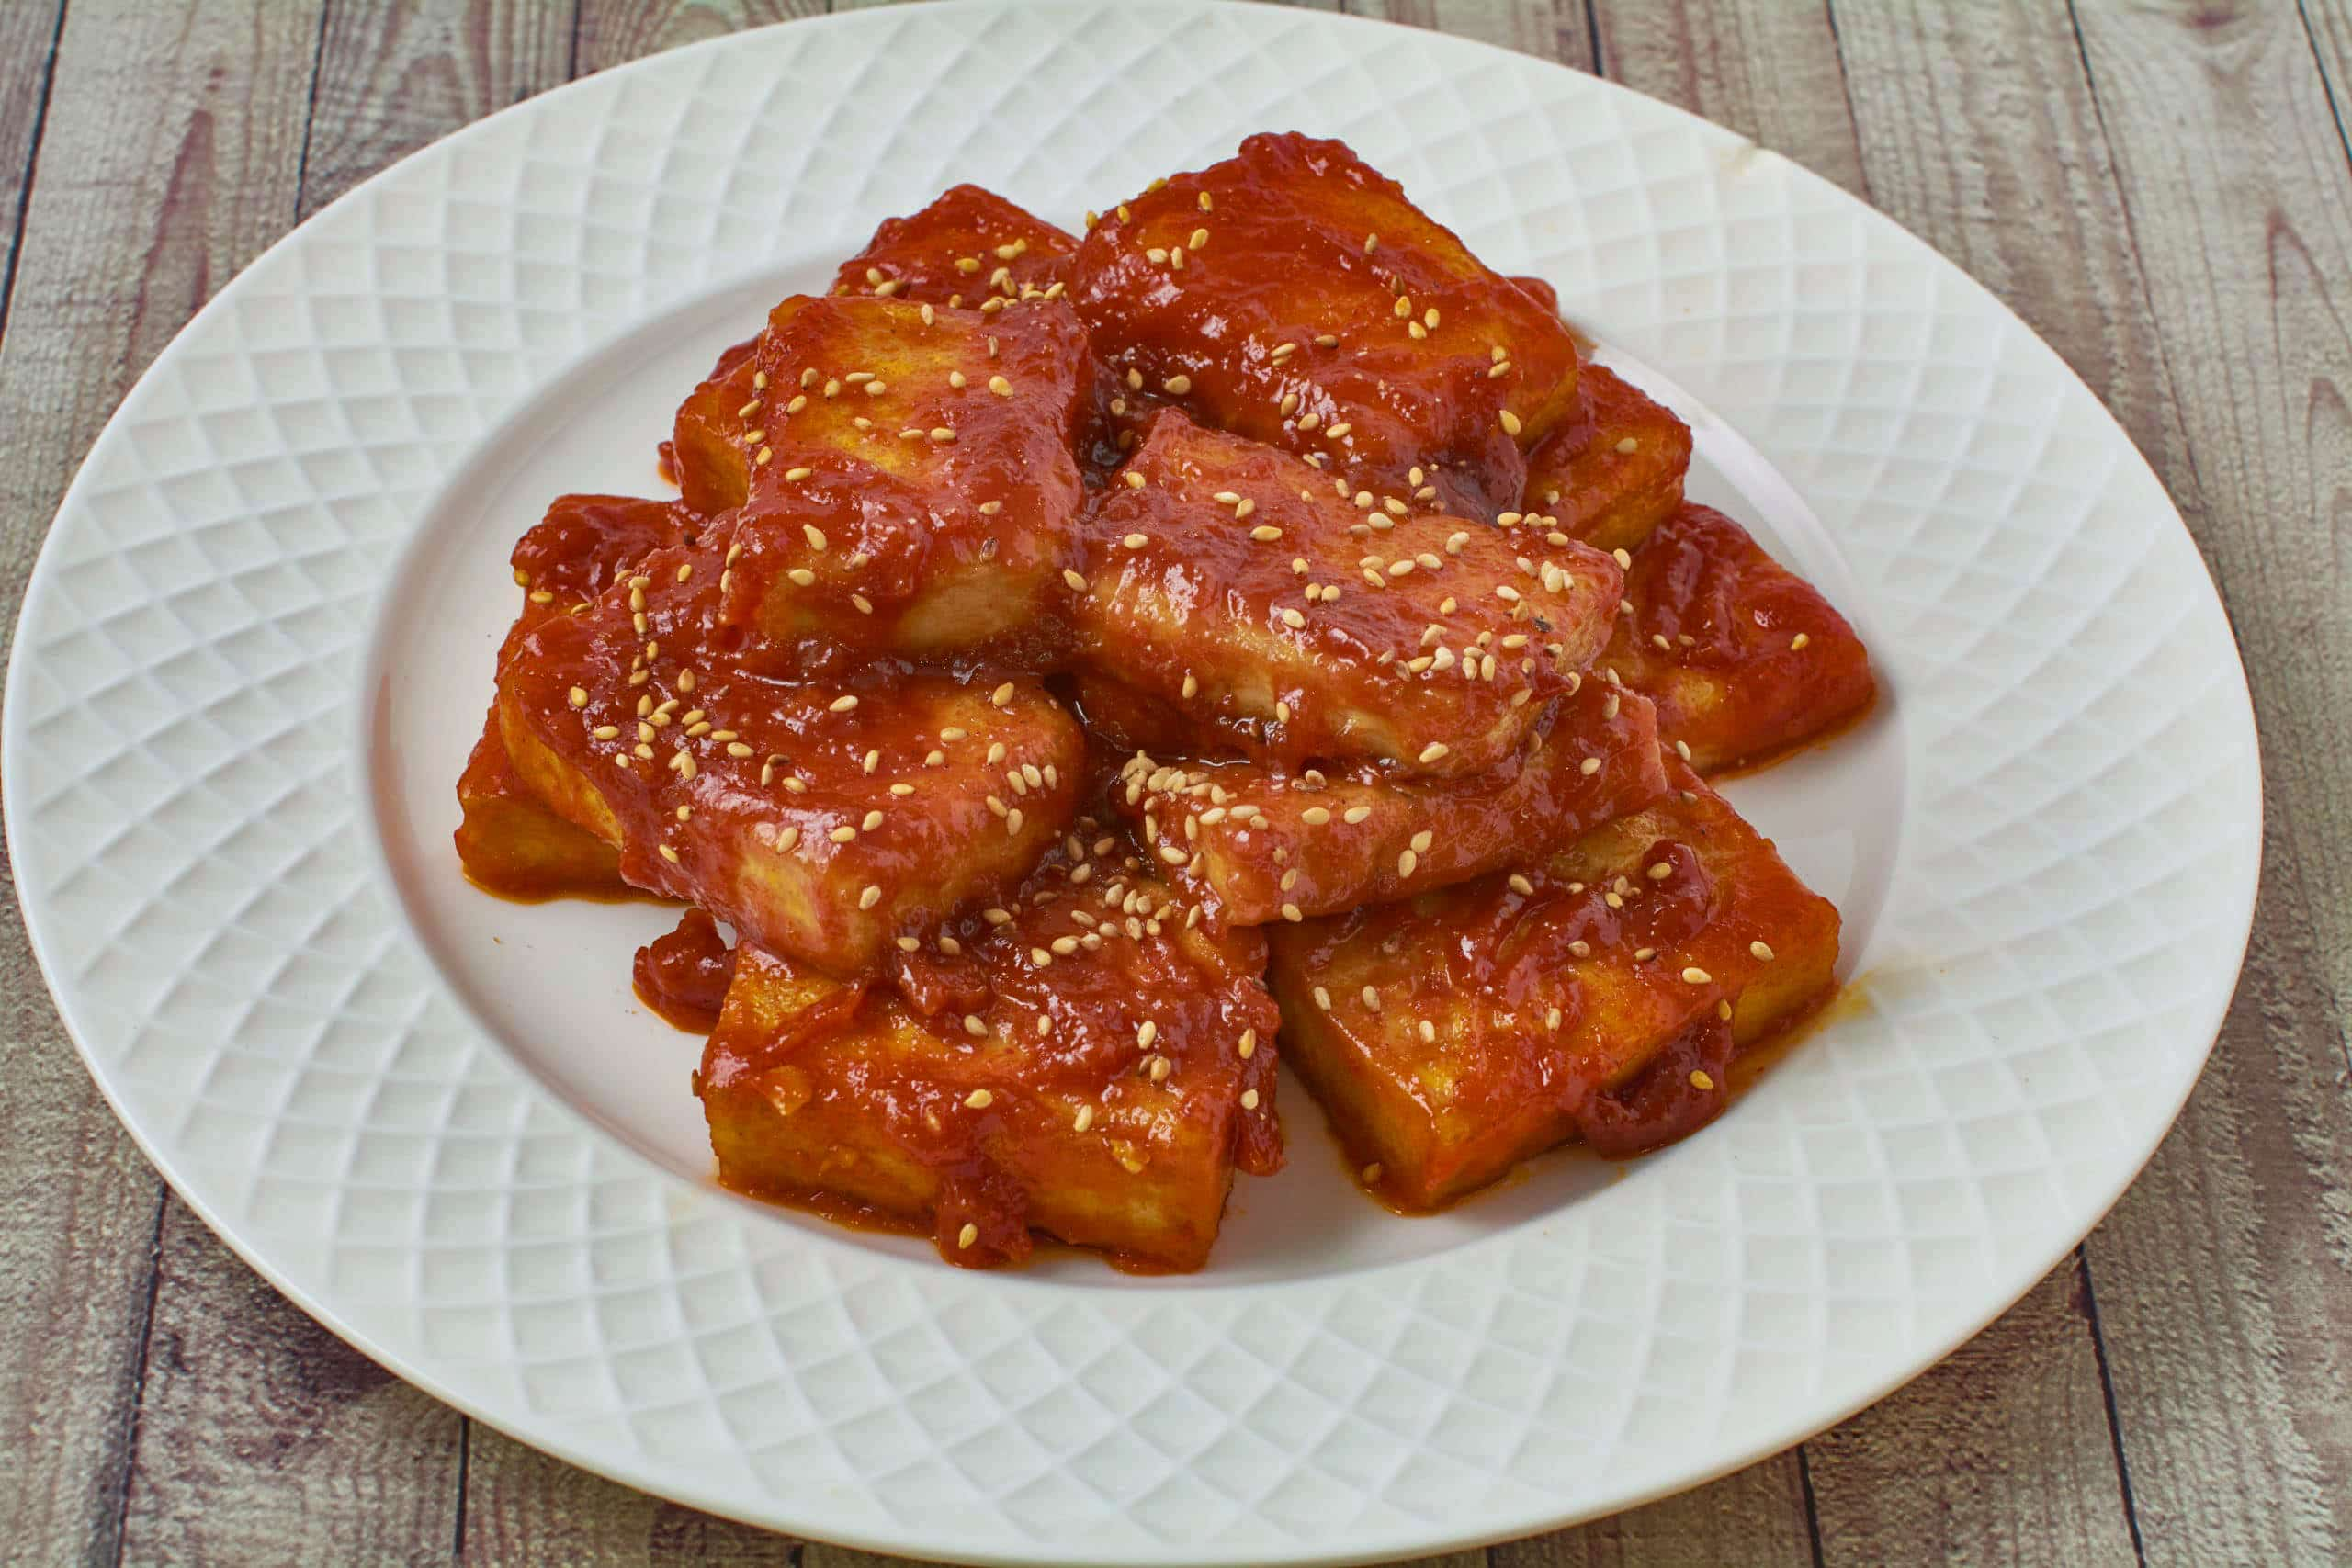 Fried tofu in a spicy sauce on a plate